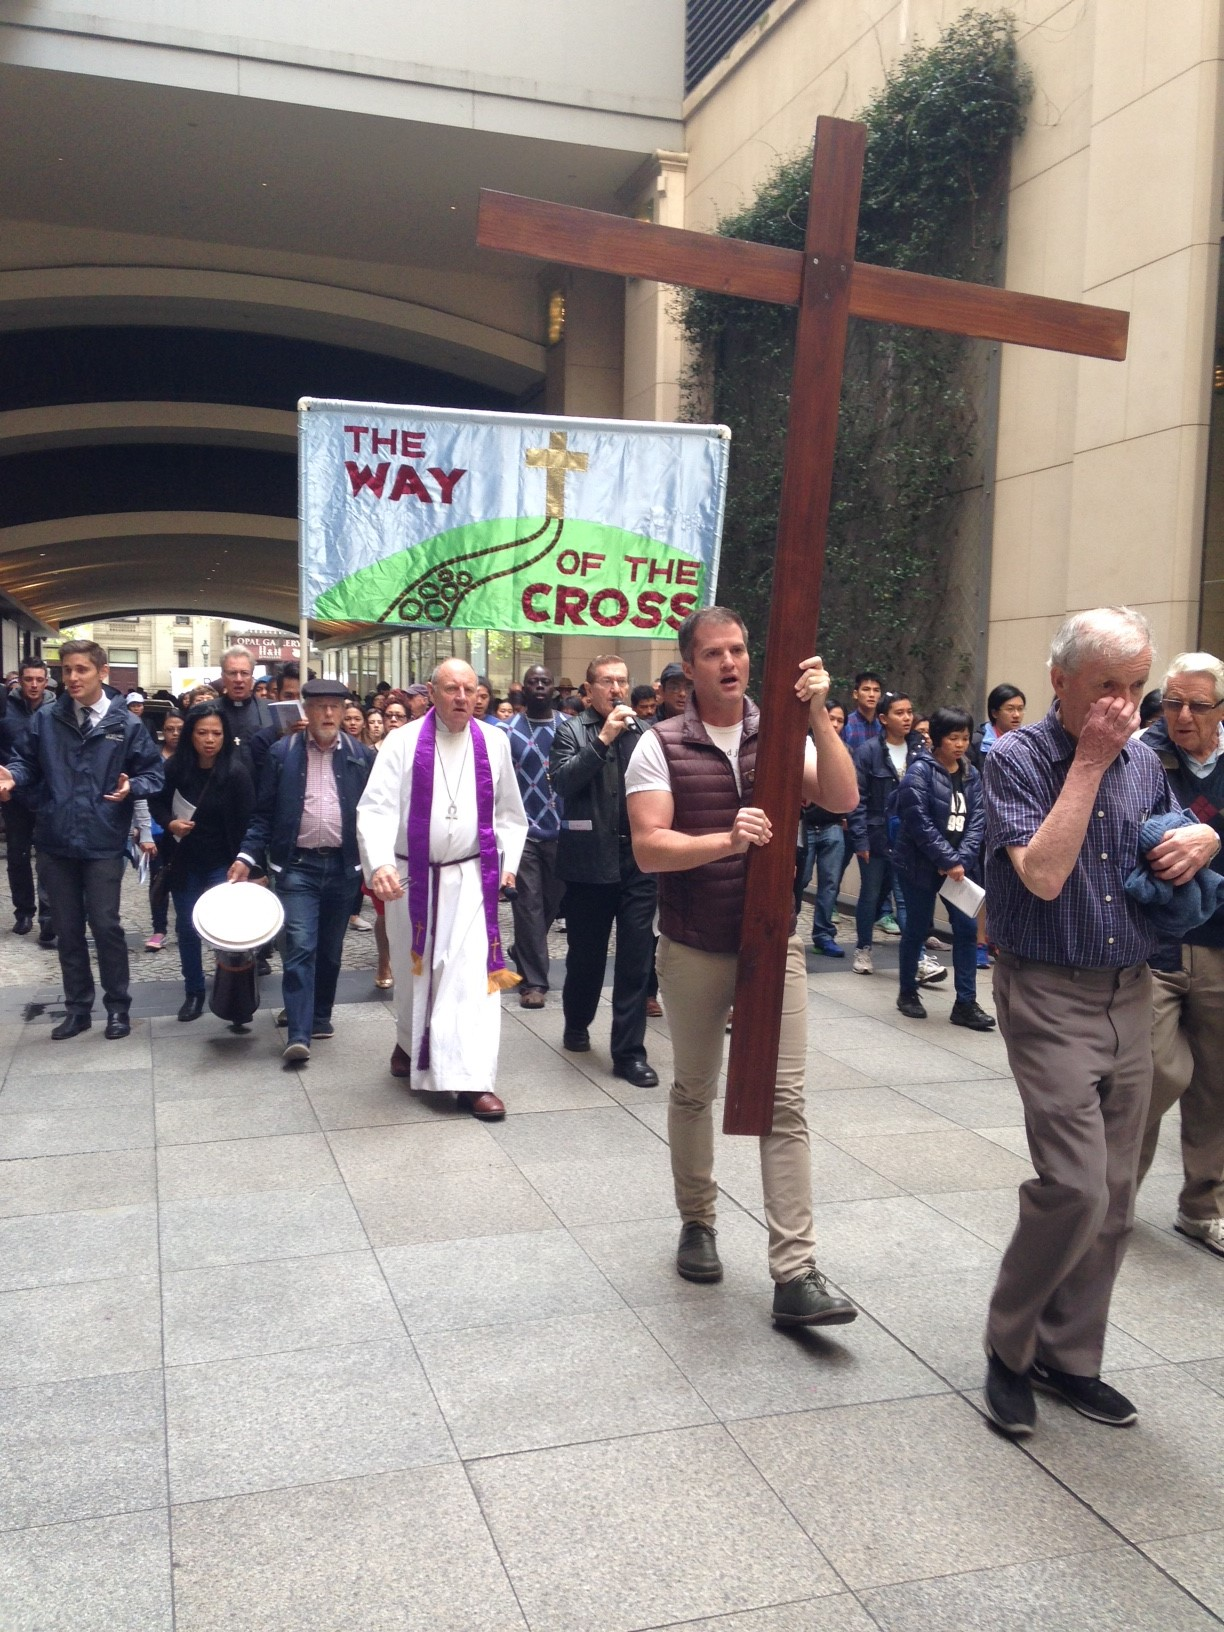 The Way of the Cross 2016, the cross and banner lead the procession through the Westin Hotel forecourt to St Paul's Cathedral - 550KB